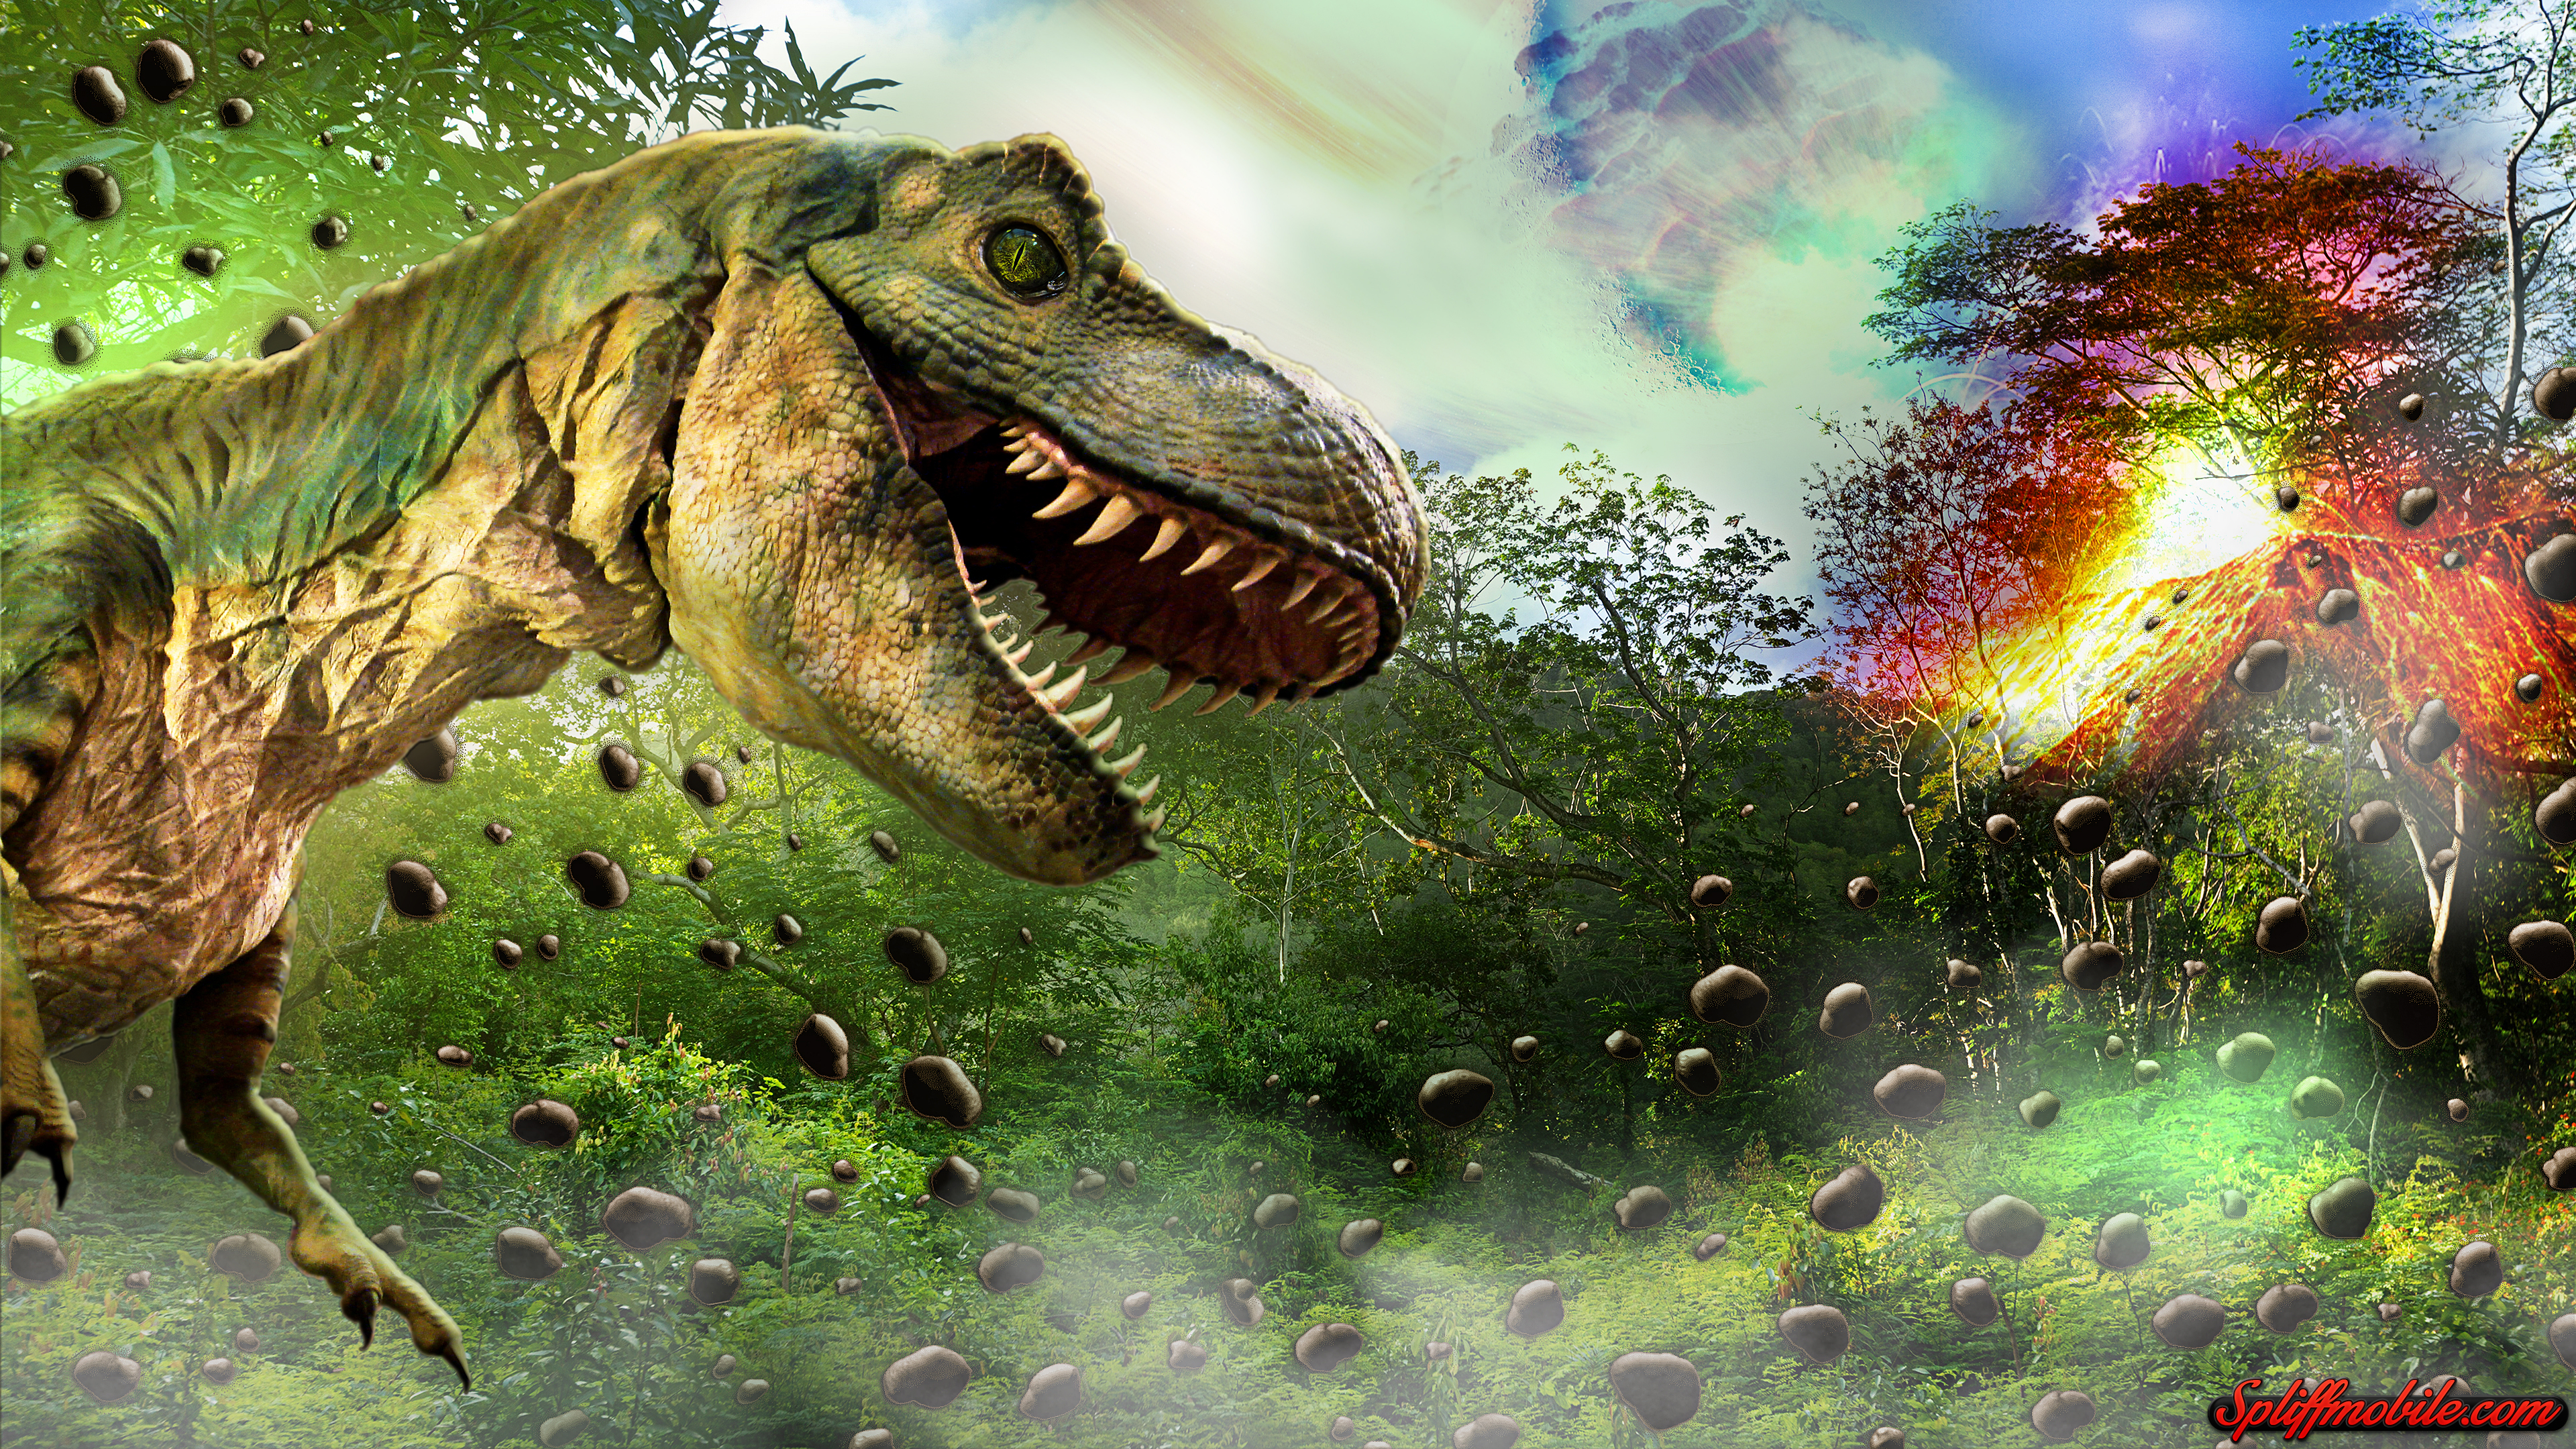 Live Dinosaur Pictures Wallpaper